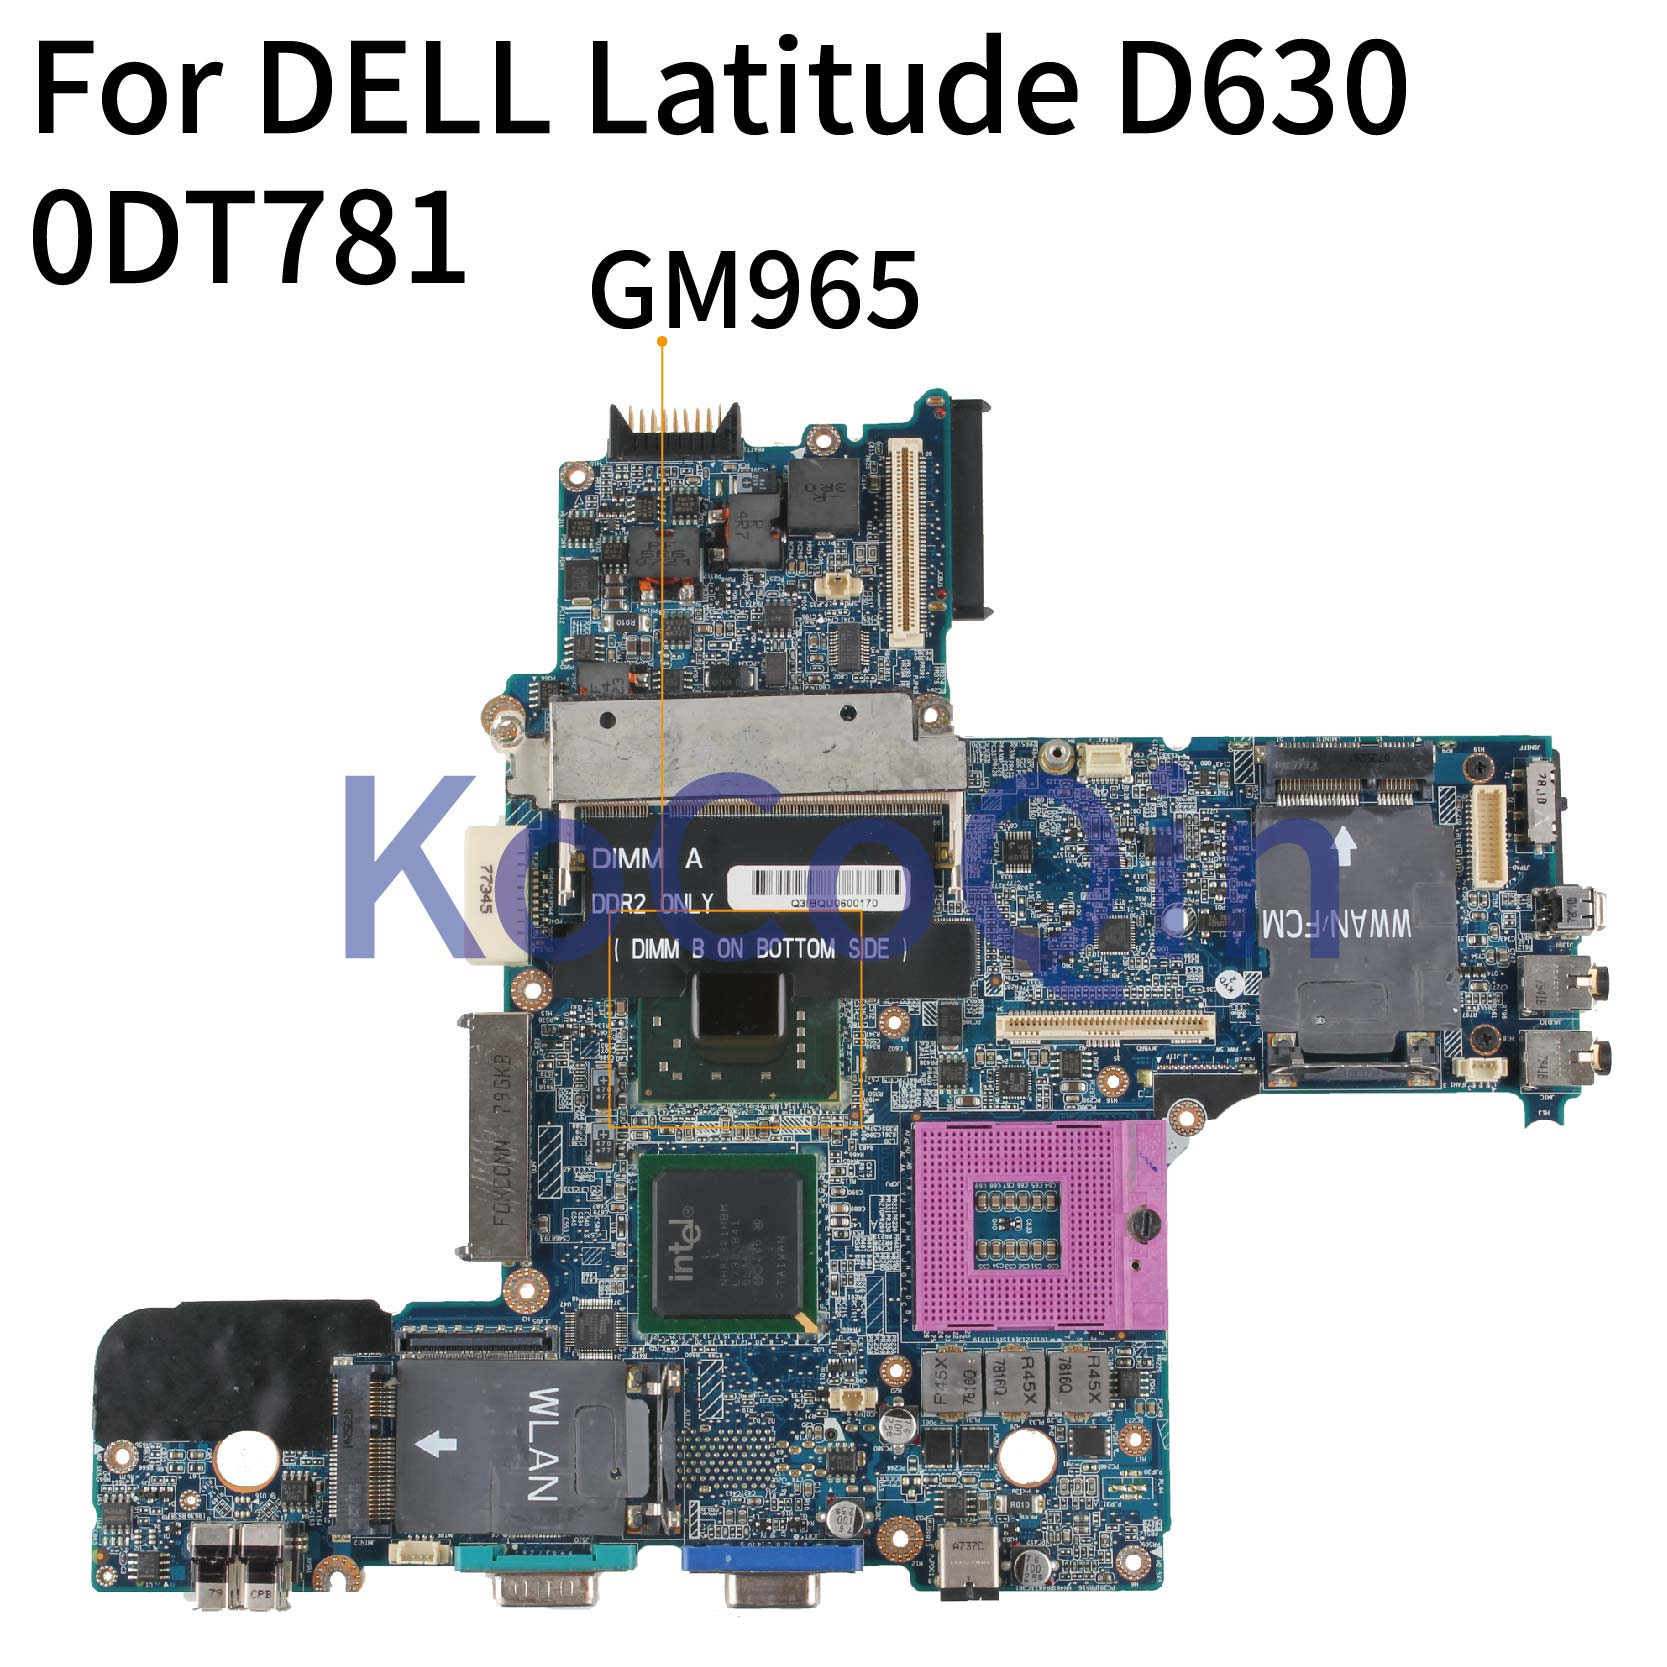 KoCoQin Laptop Motherboard For DELL Latitude D630 PP18L Mainboard CN-0DT781 0DT781 LA-3301P  GM965